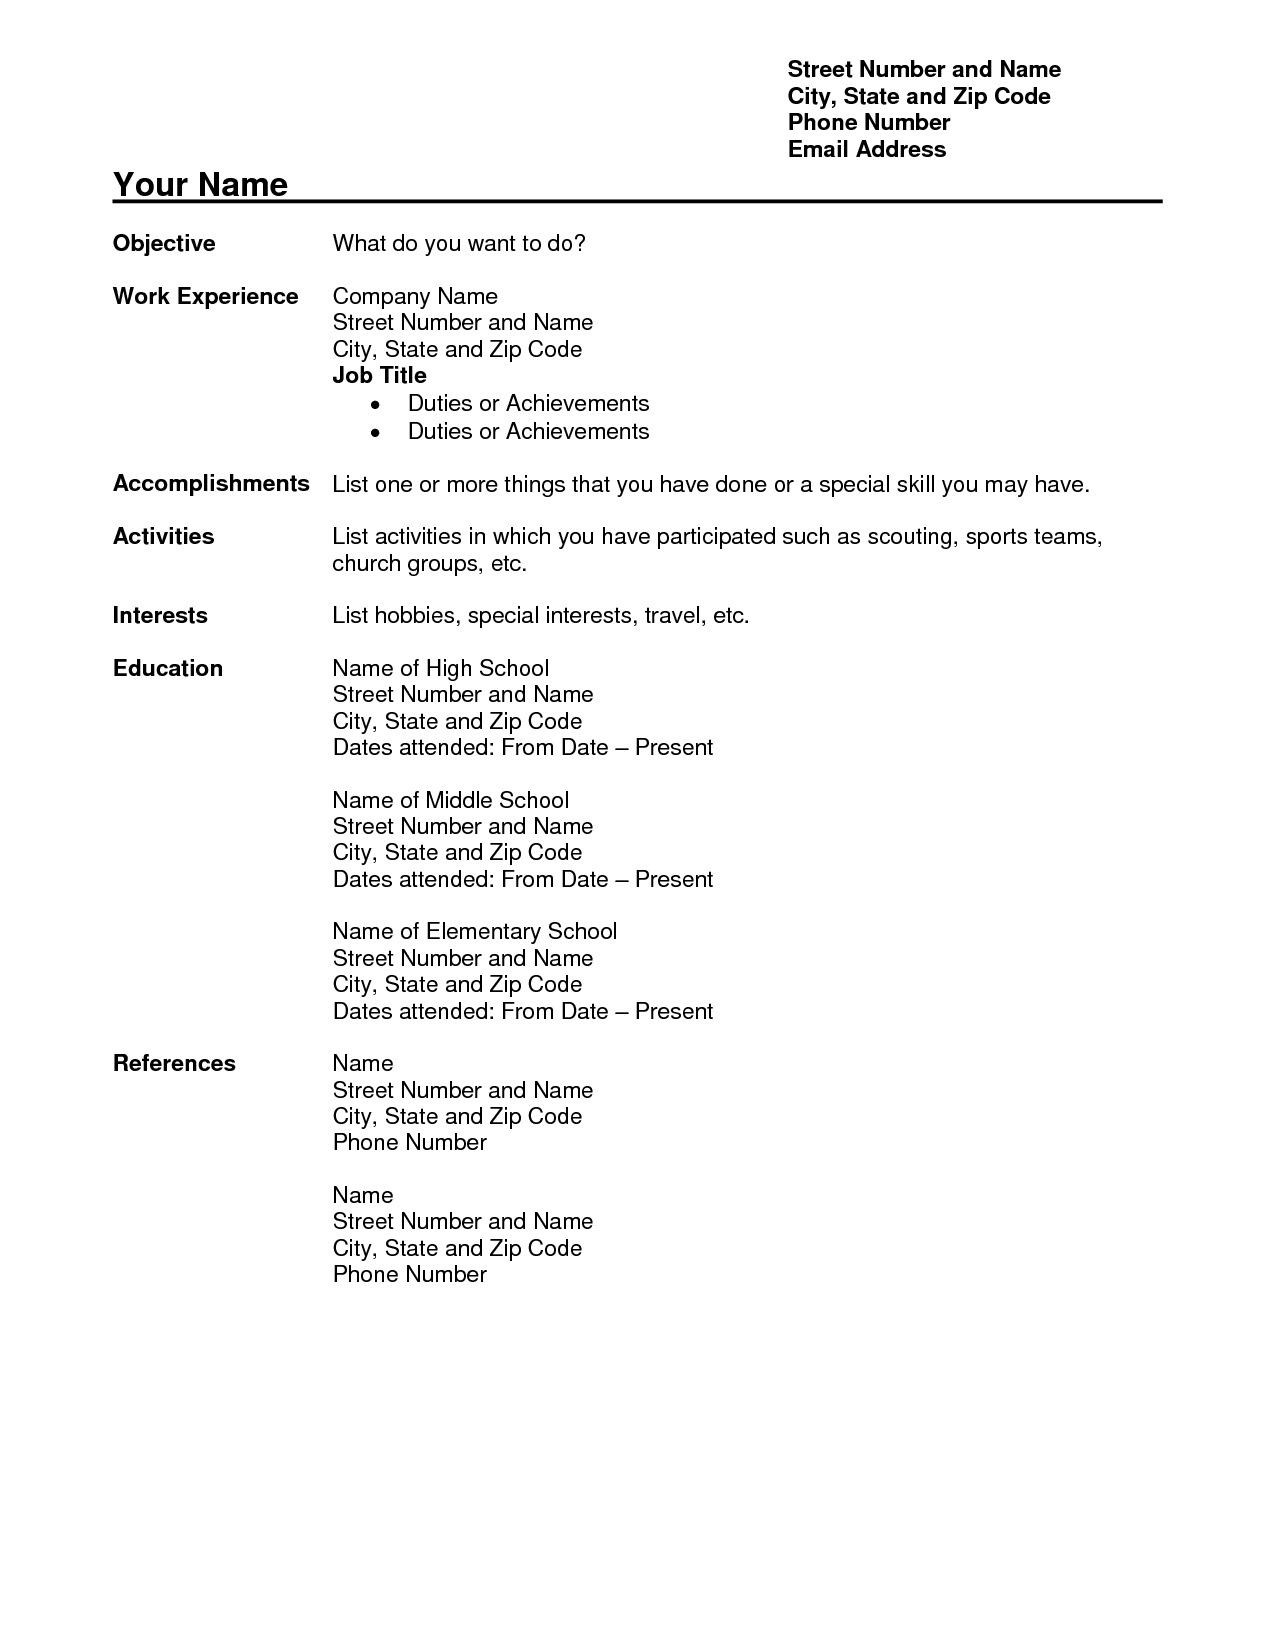 Download Free Resume Templates Free Teacher Resume Templates Download Free Teacher Resume